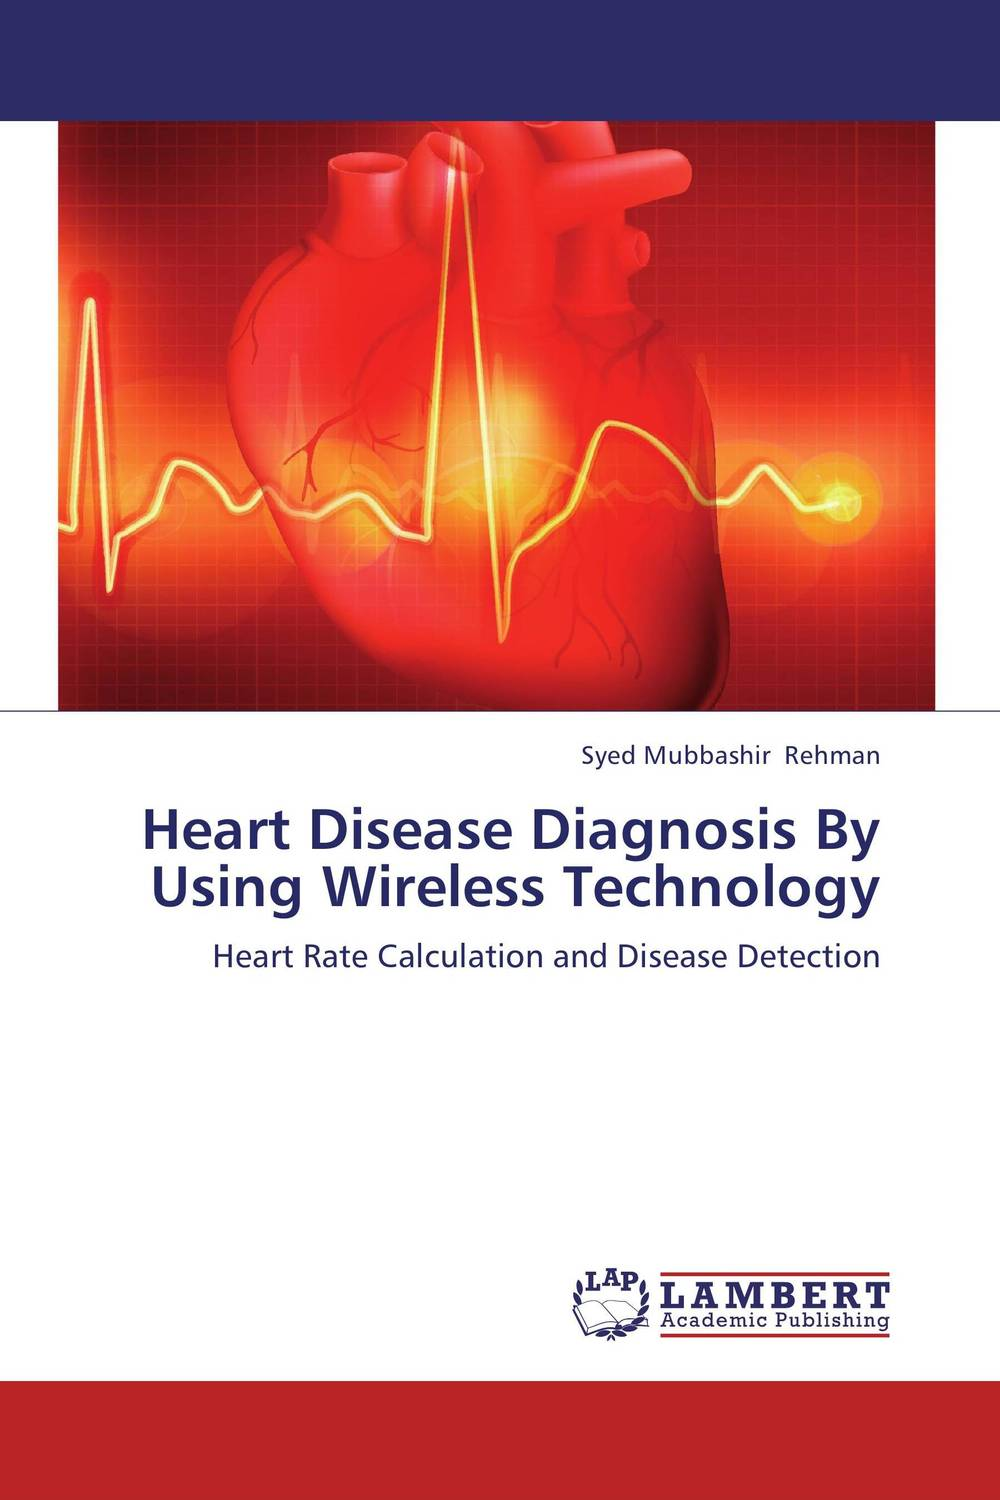 Heart Disease Diagnosis By Using Wireless Technology franke bibliotheca cardiologica ballistocardiogra phy research and computer diagnosis